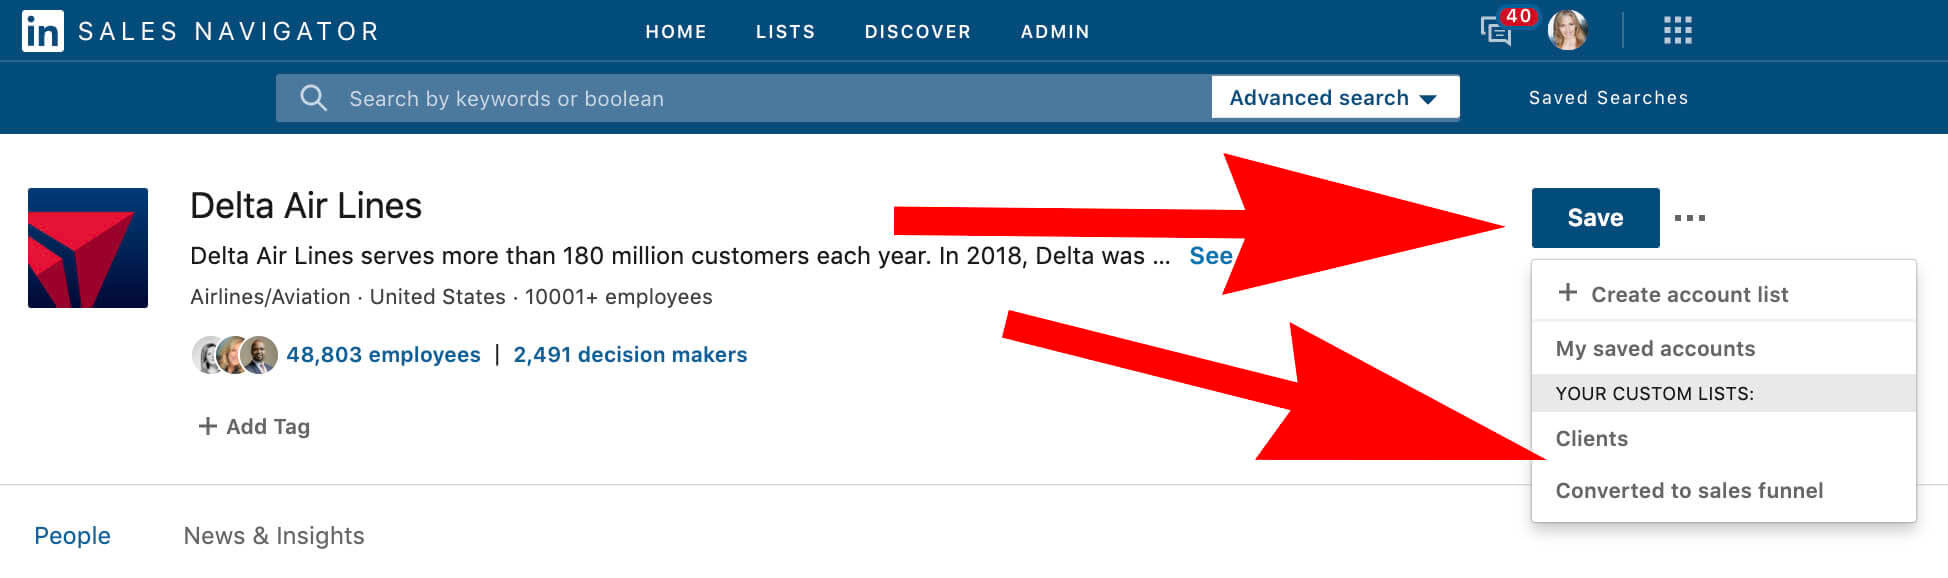 Using Linkedin Custom Lists to create Do Not Contact Templates - saving accounts to the right list